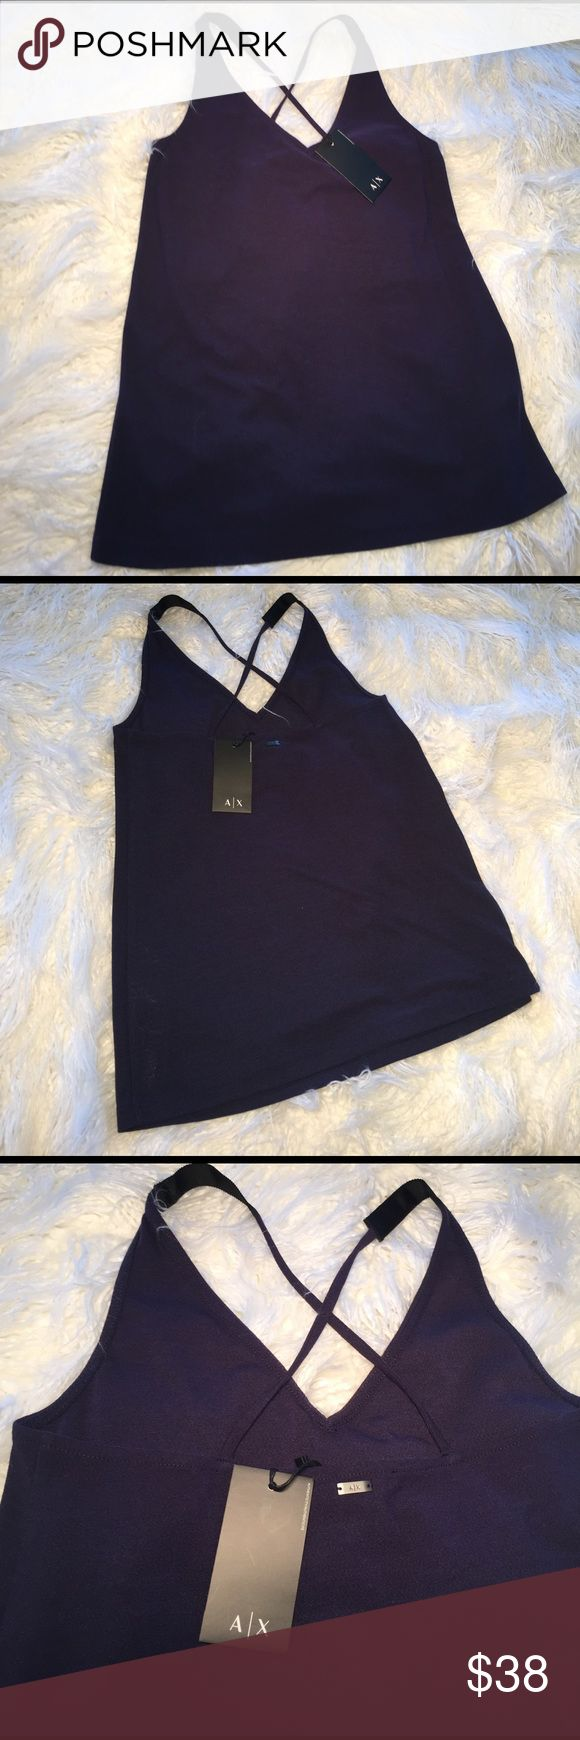 A/X ARMANI EXCHANGE Cross Strap Tank A/X ARMANI EXCHANGE Cross Strap Tank Top Women's A/X Armani Exchange Tops Tank Tops